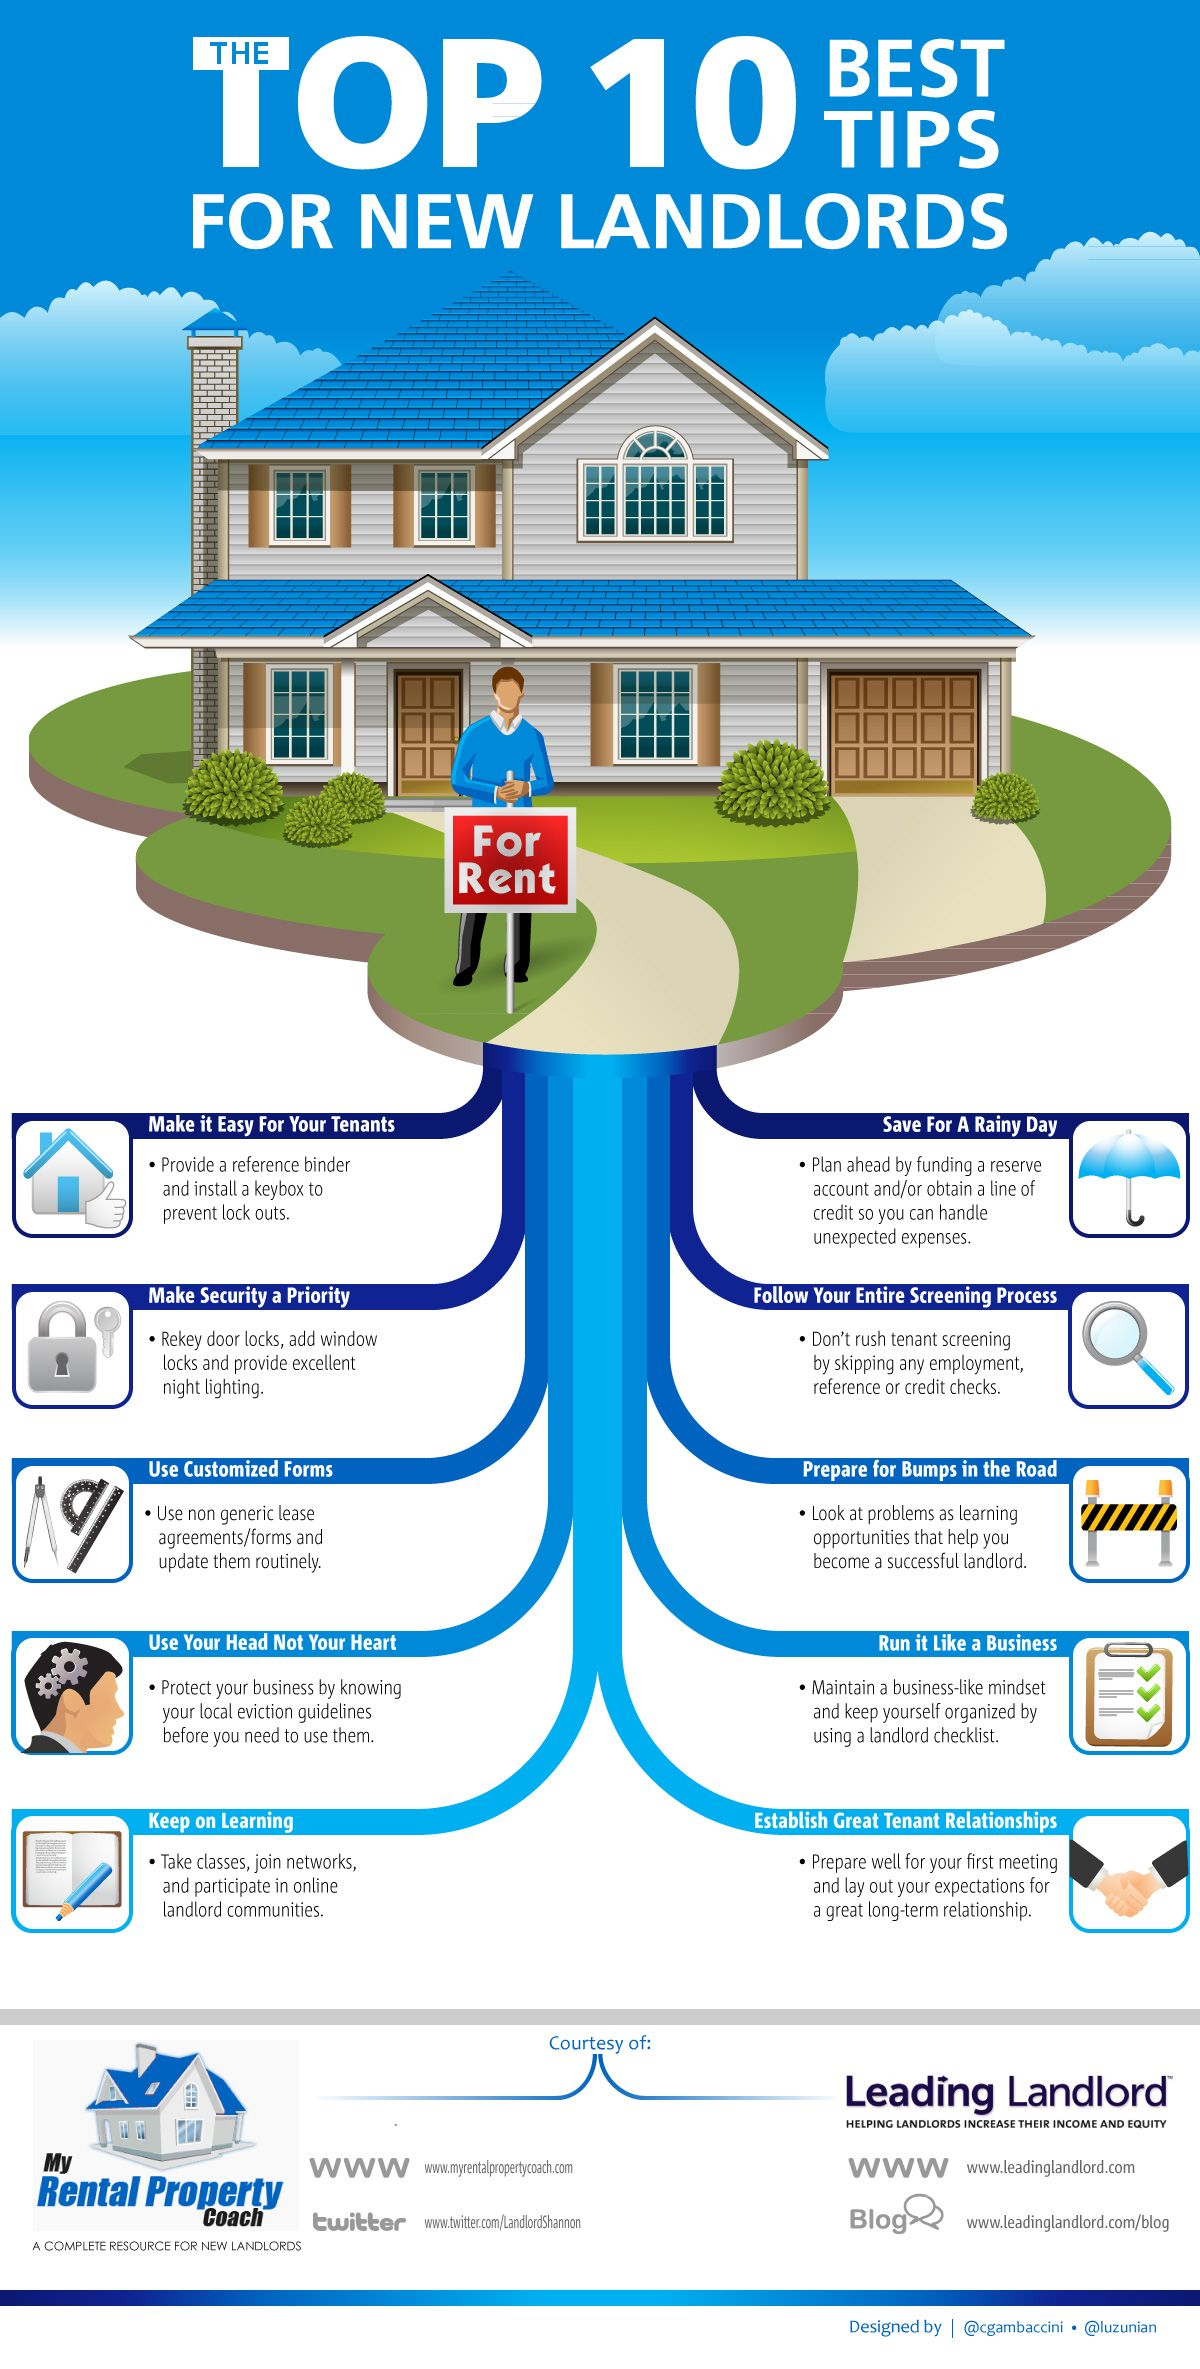 Infographic for New Landlords   Real Estate   Real Estate, Real estate rentals, Being a landlord